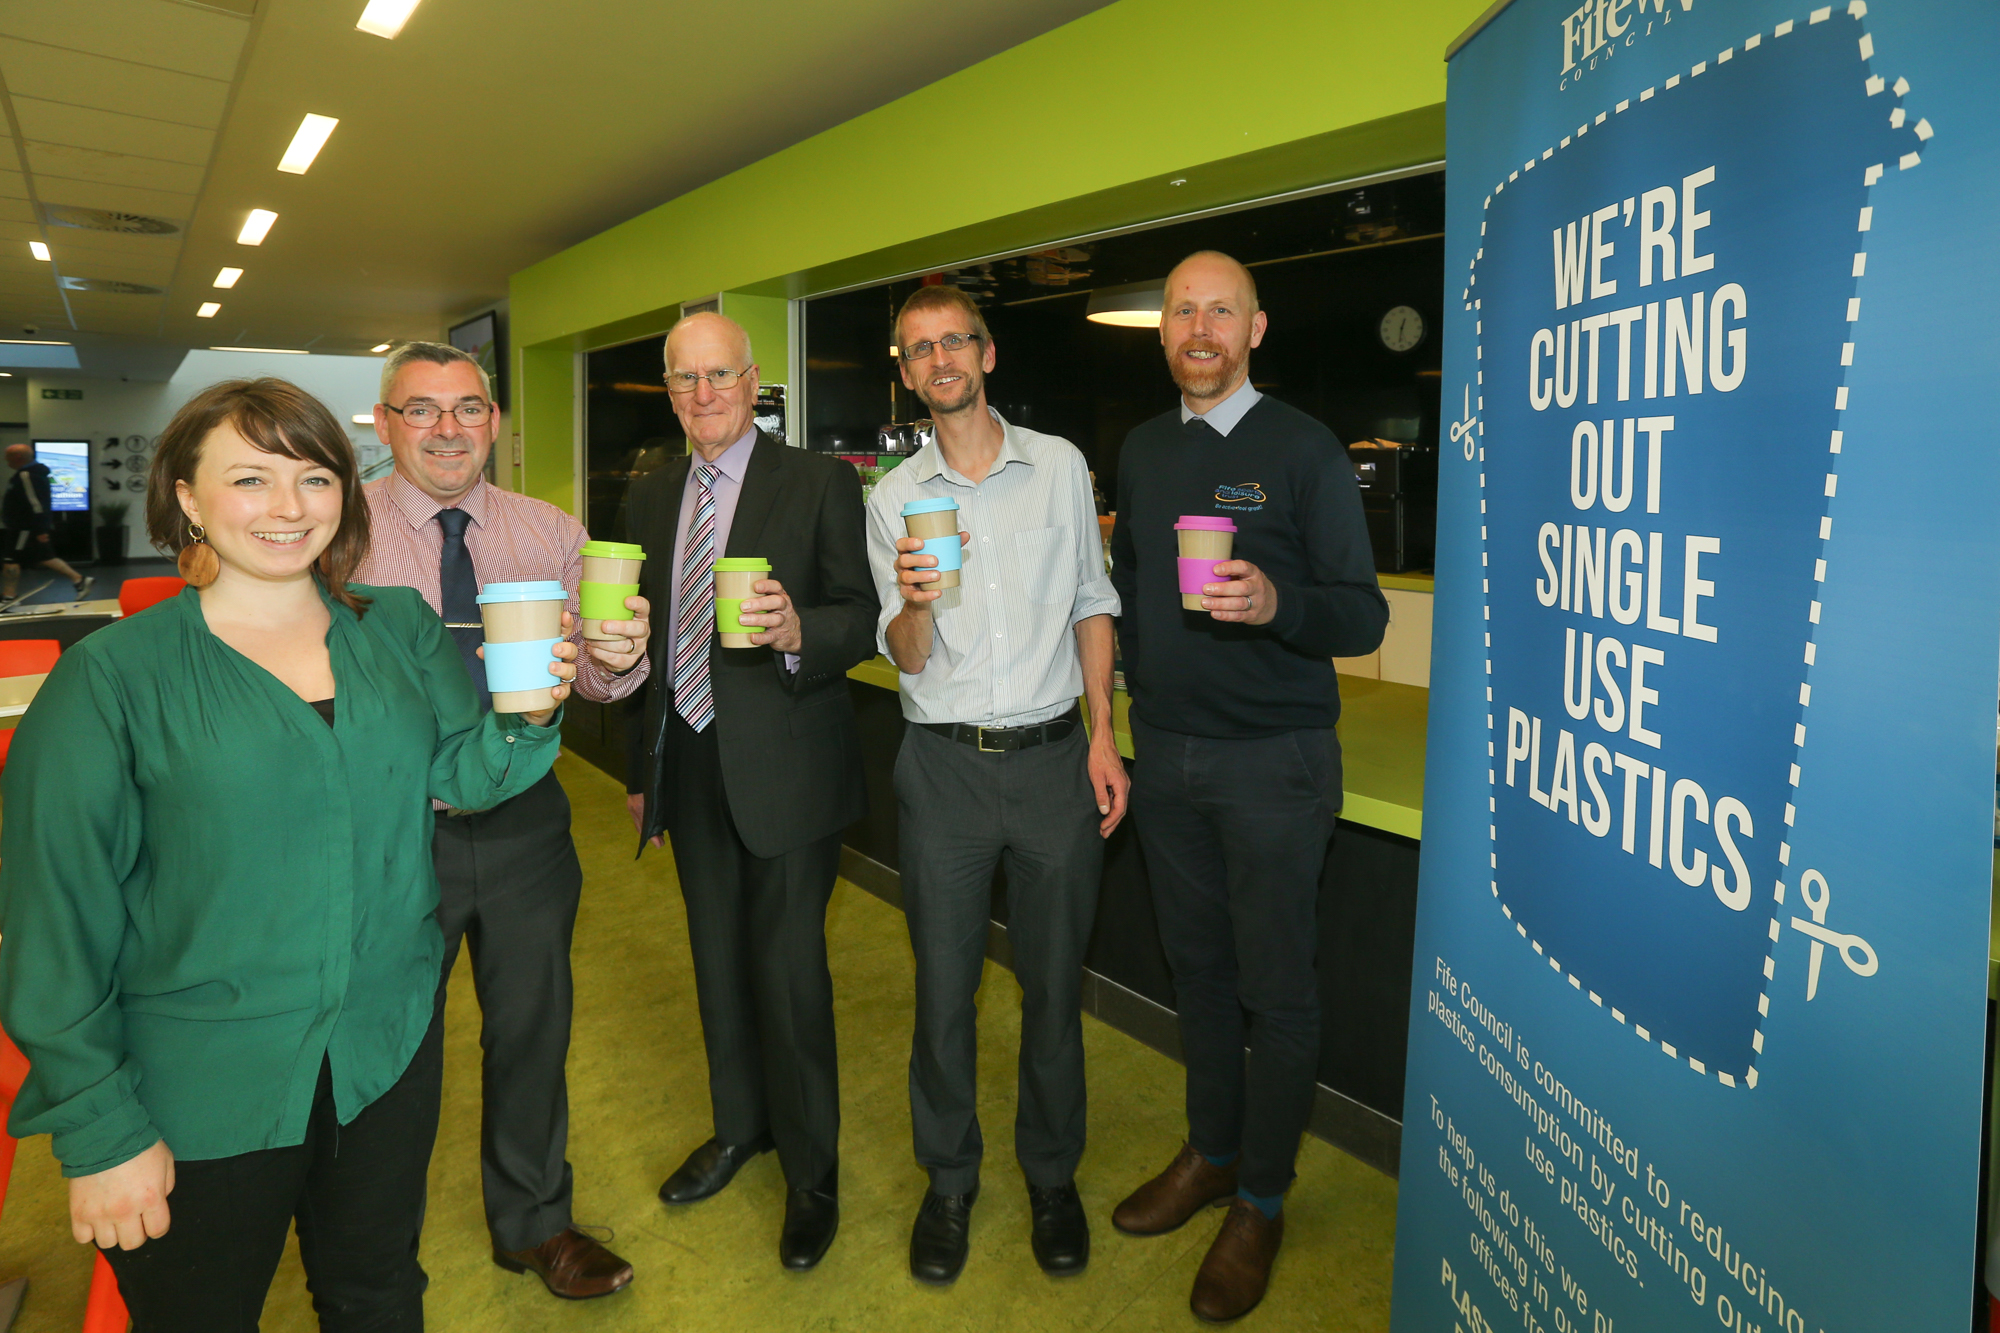 Image from left to right: Rosie Sim and Andrew Gernon, both of Fife Cultural Trust (ONFife), Cllr Ross Vettraino, Simon Jeynes, Resource Efficient Solutions and Scott Urquhart, Fife Sports and Leisure Trust.